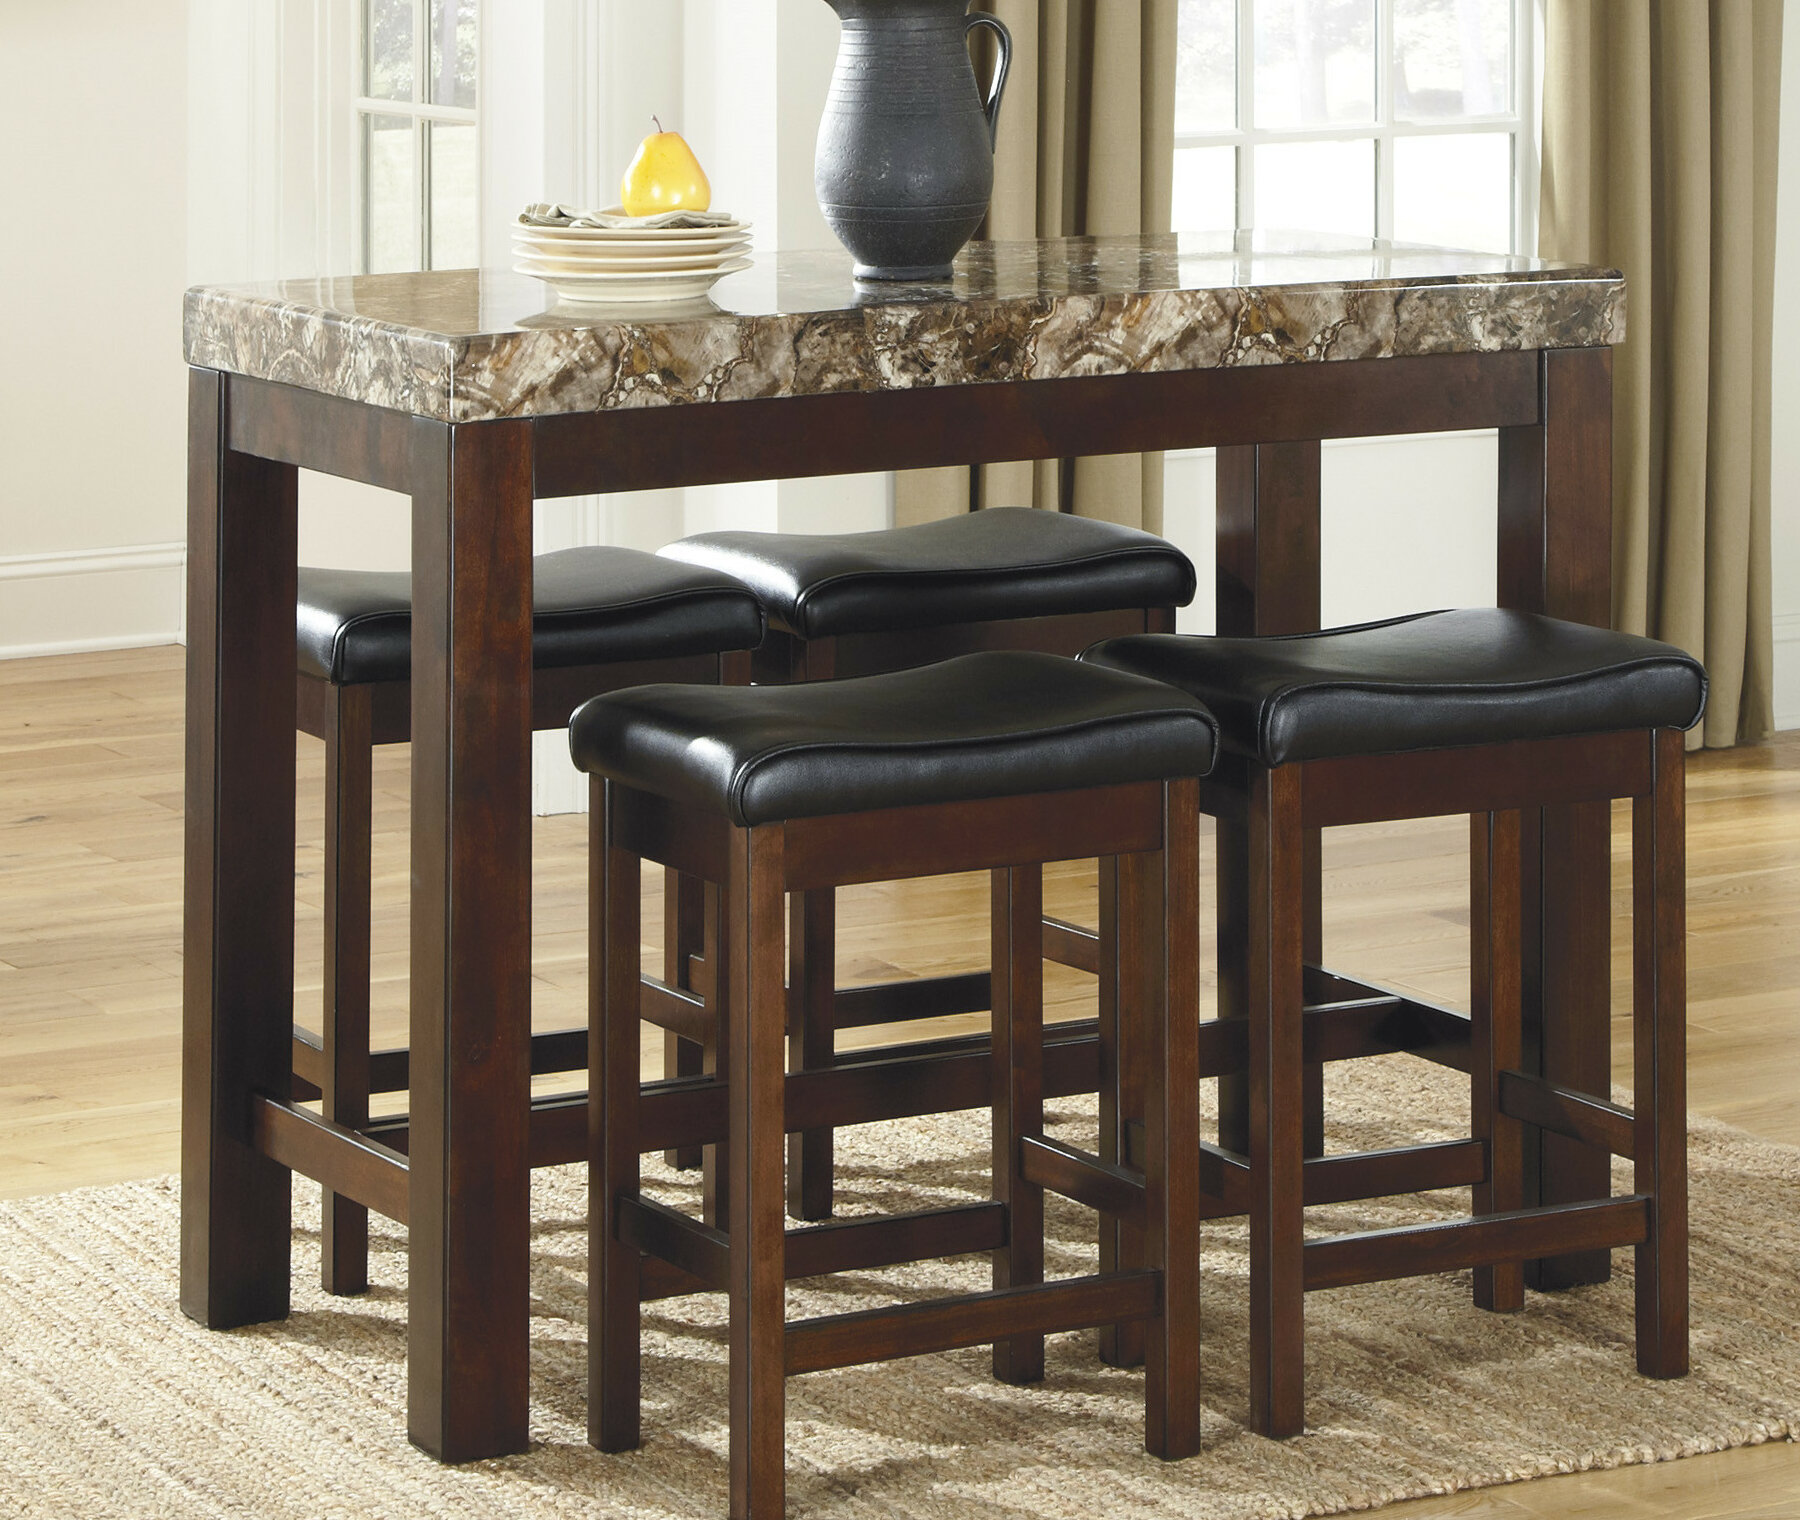 Red Barrel Studio Chadron Counter Height Dining Table Reviews Wayfair